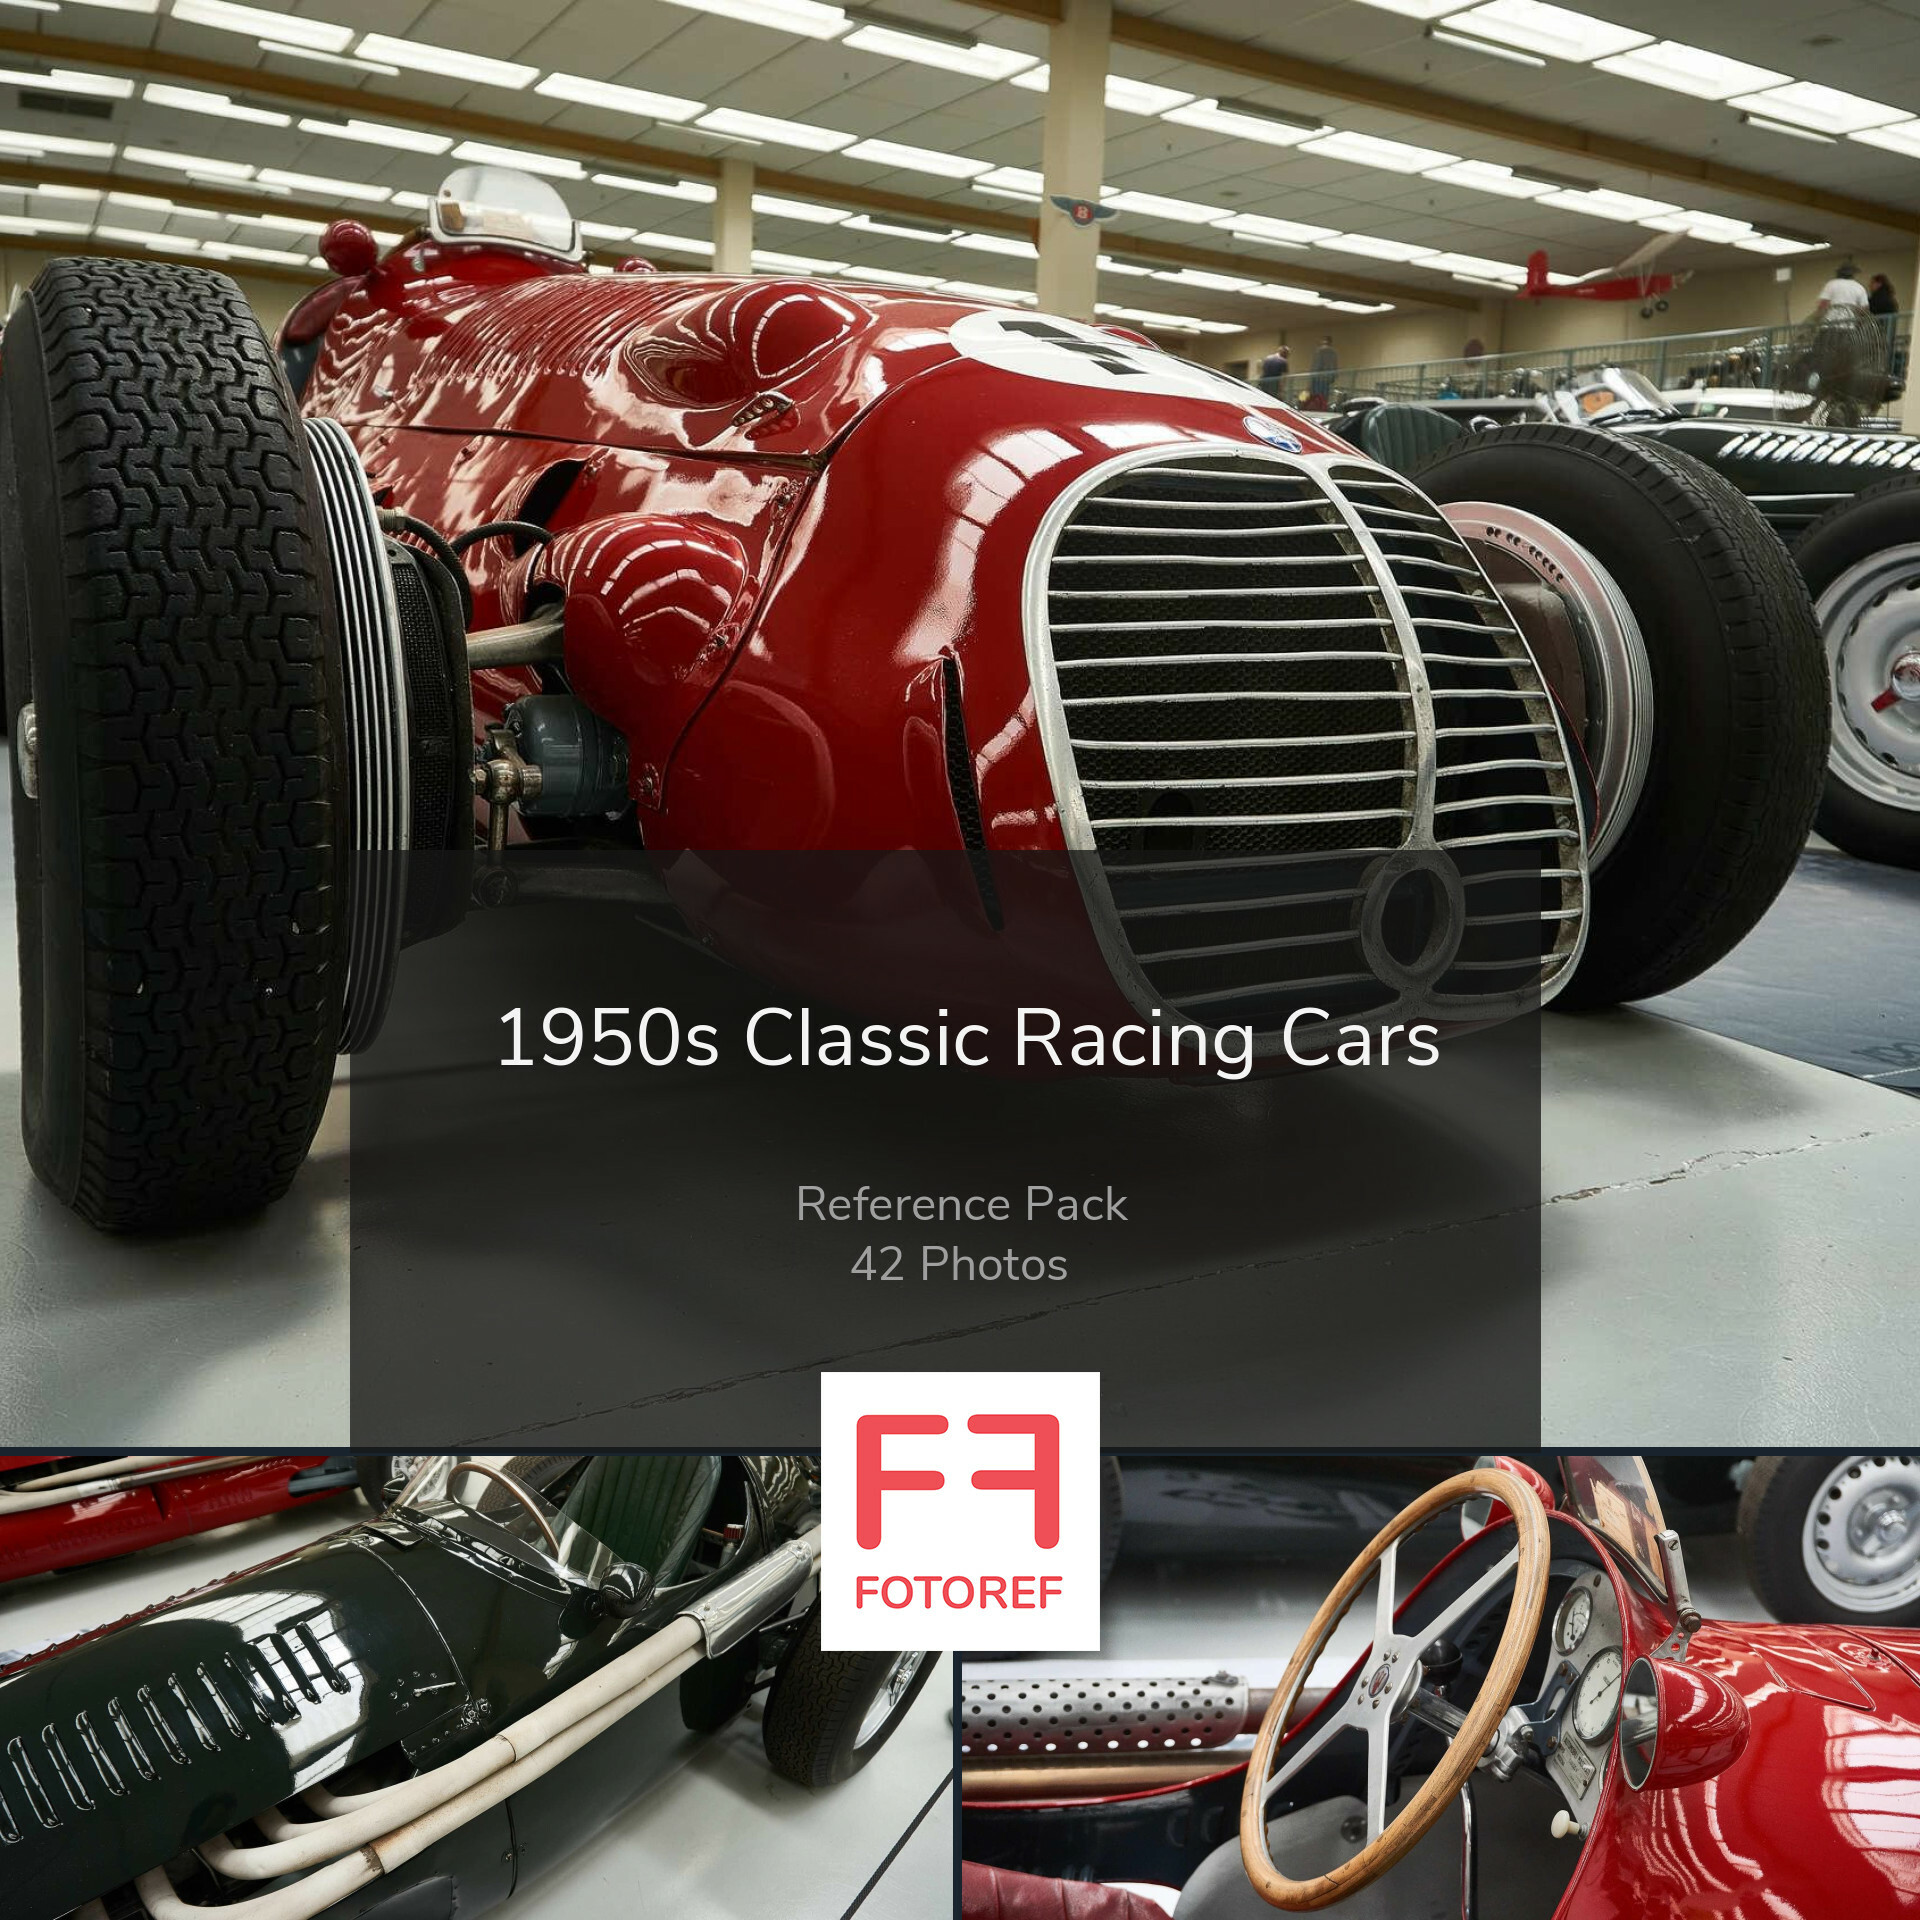 Artstation 42 Photos Of 1950s Classic Racing Cars Fotoref Com Photo Packs